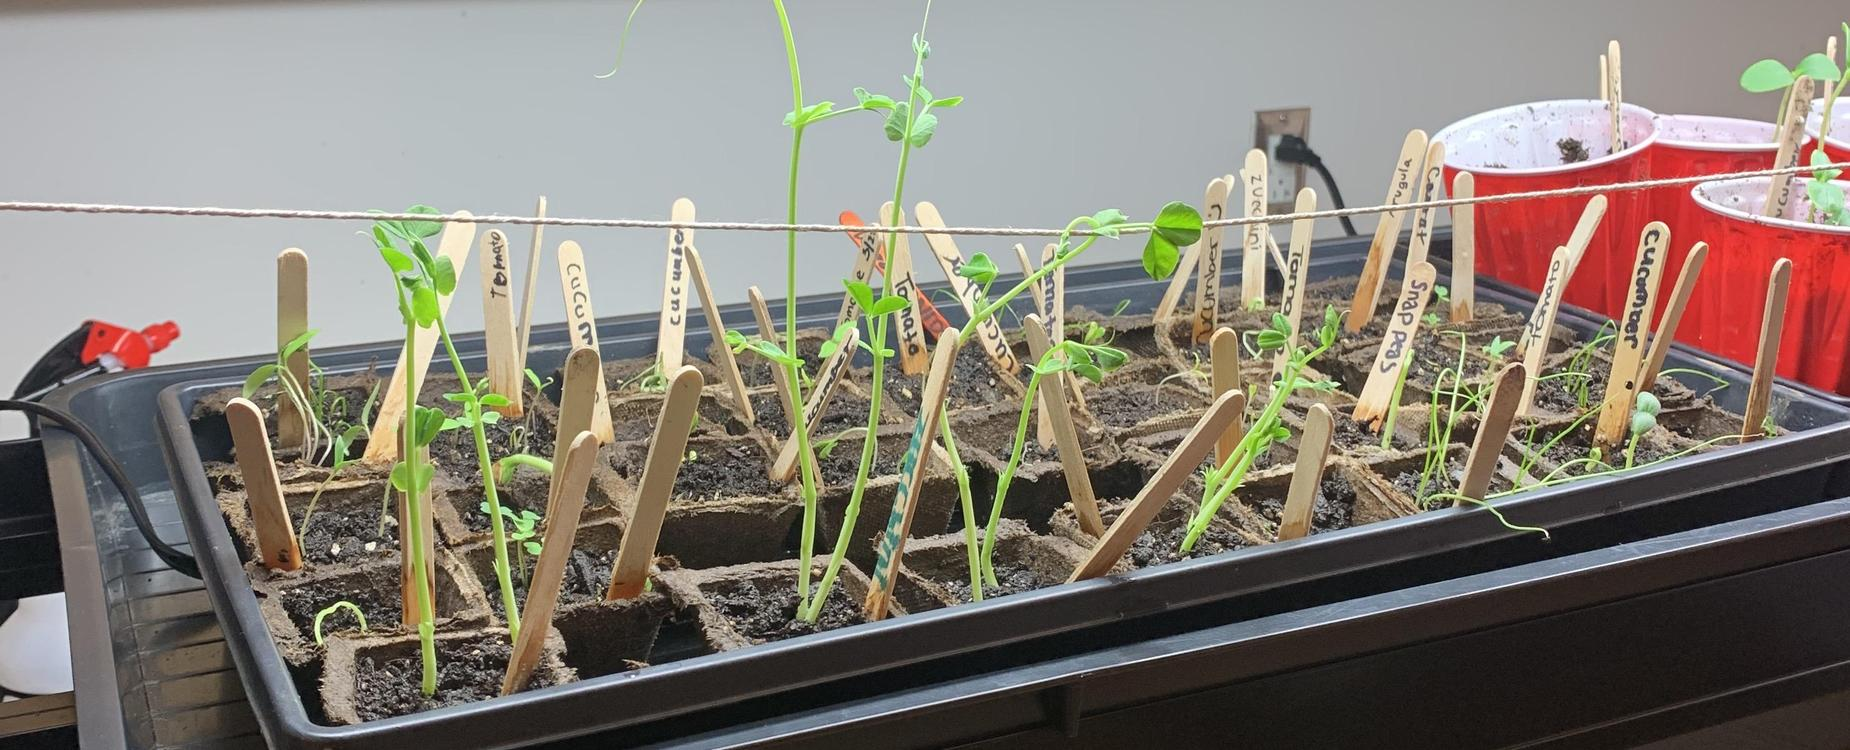 Plants grown by students in a gardening program